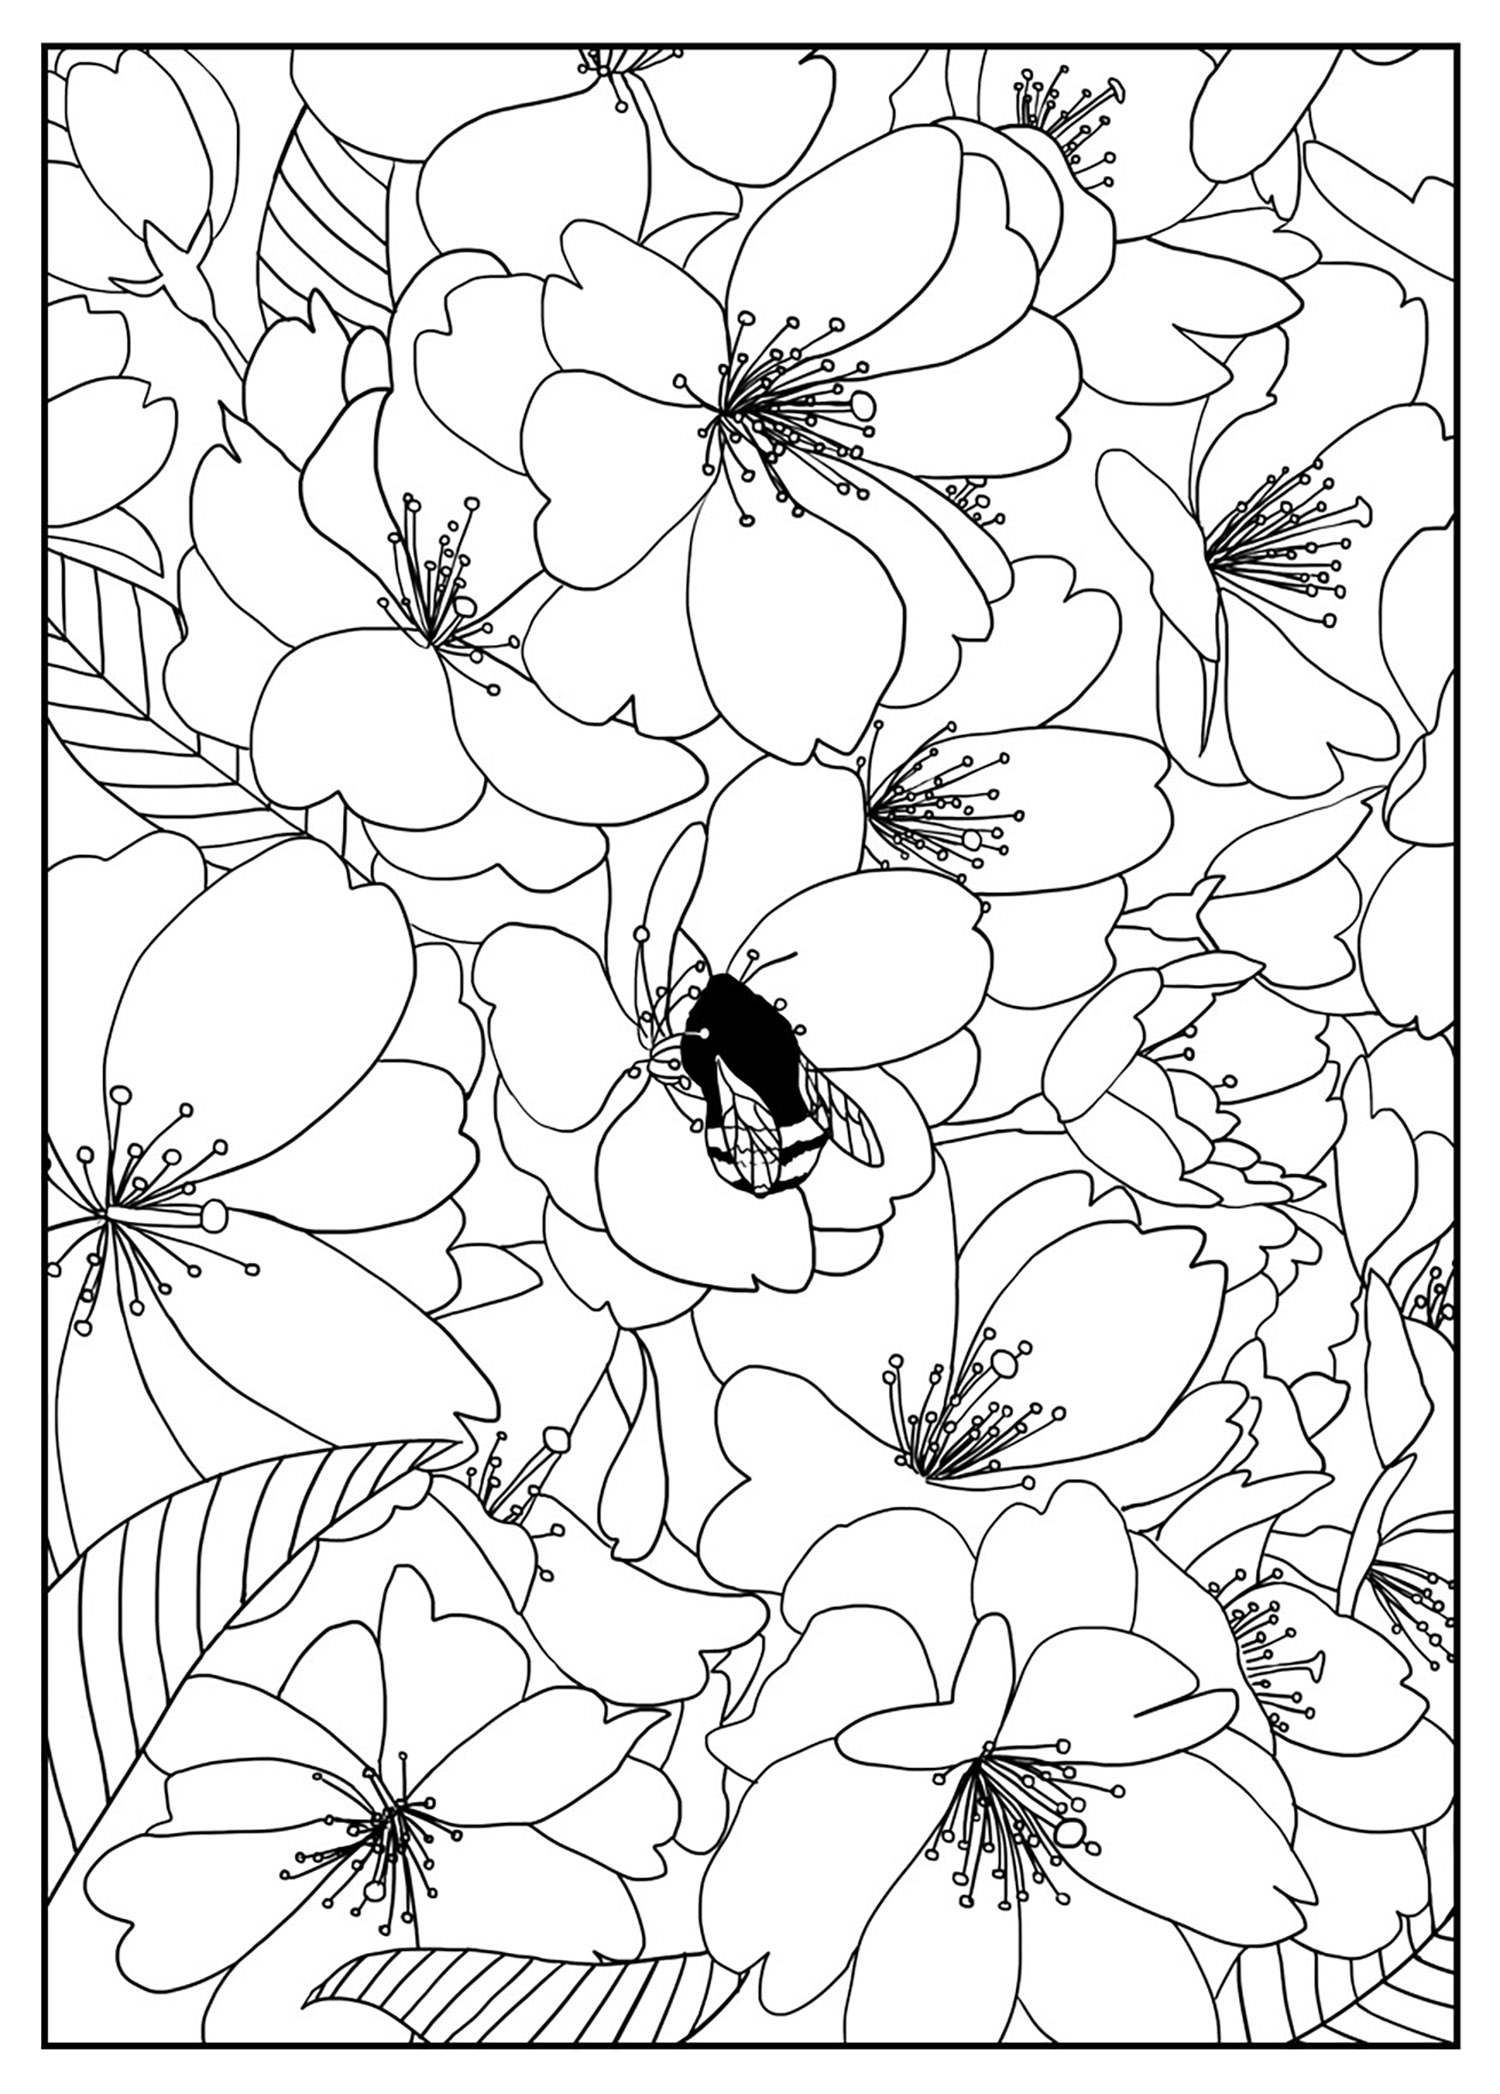 Coloring pages trees and flowers - Cherry Tree Exclusive Coloring Page From The Gallery Flowers And Vegetation Artist